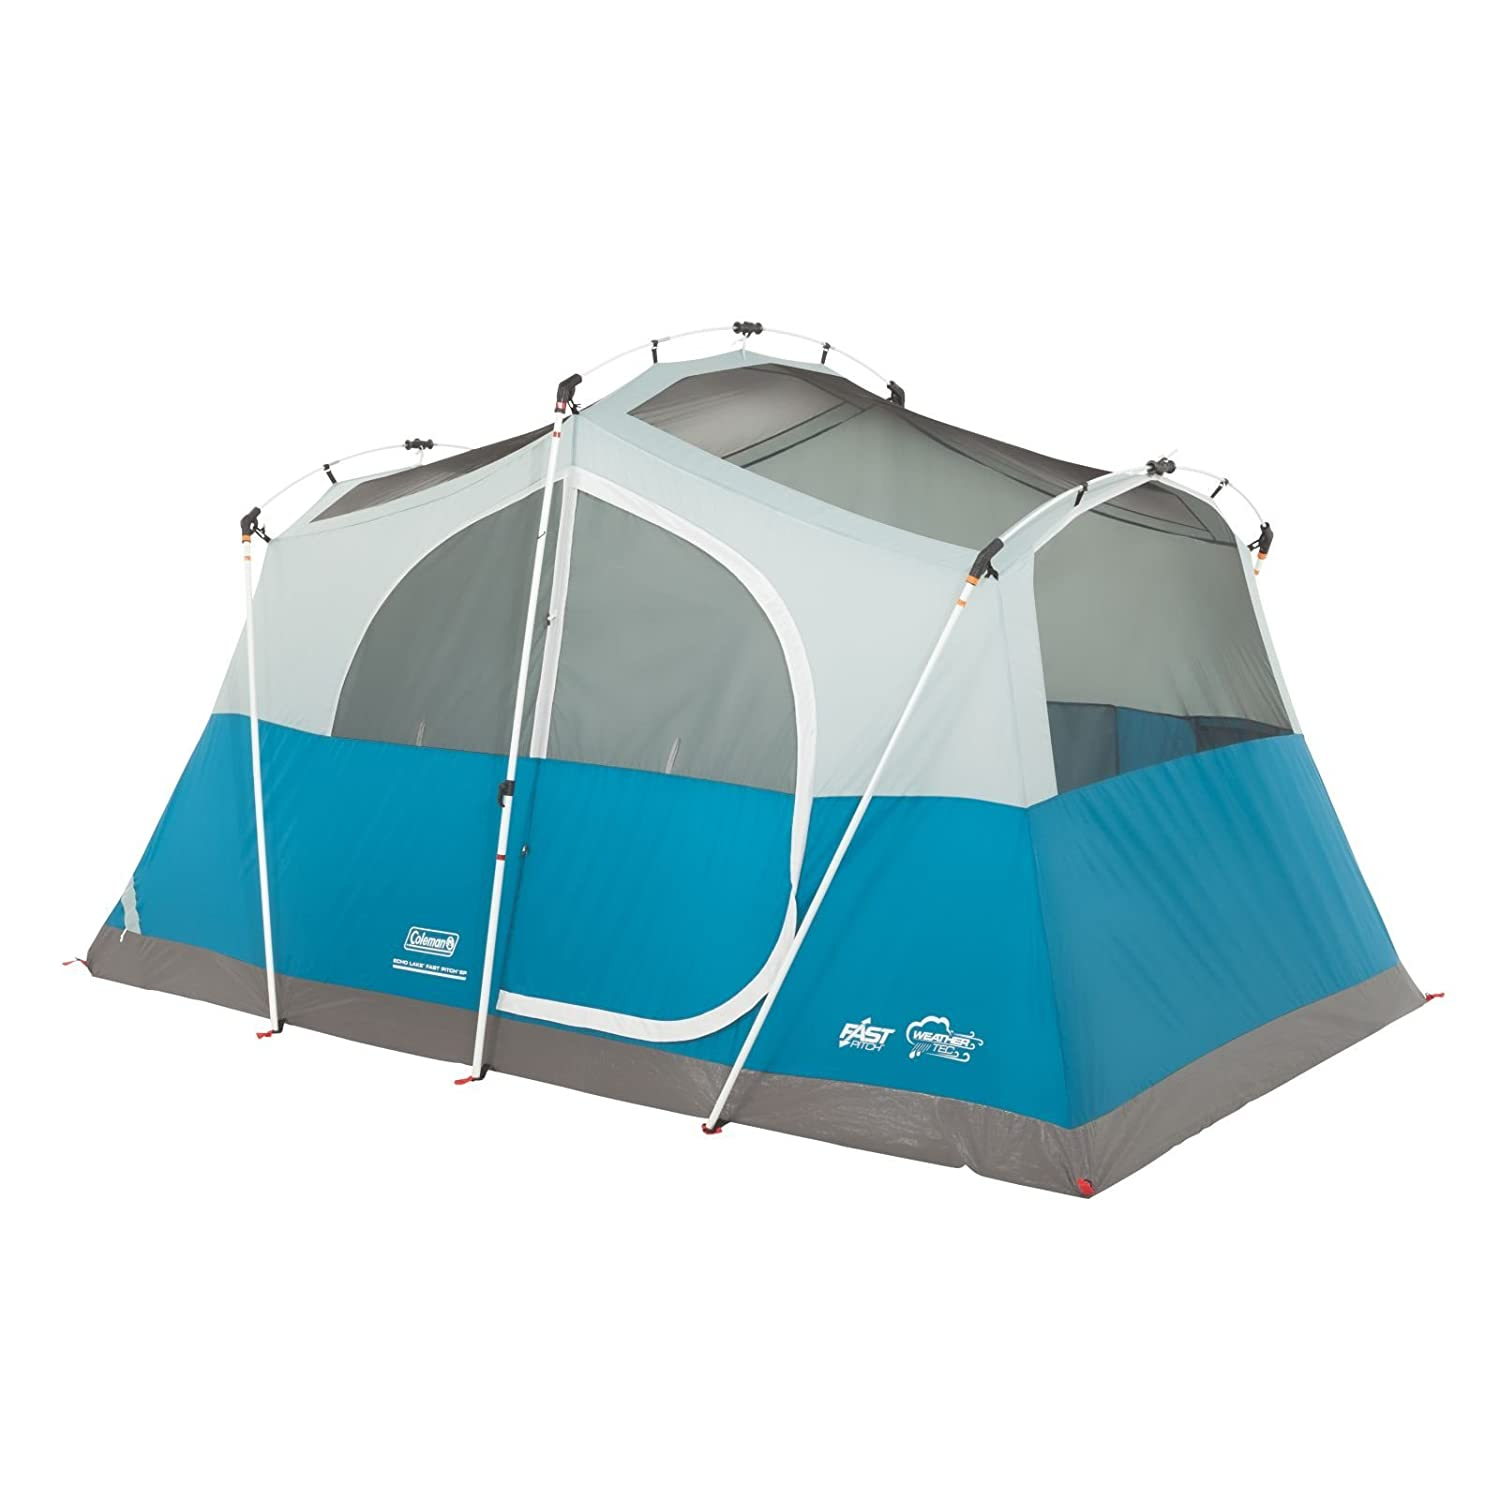 easy shade dp family with cabins tent beach dome canopy up amazon camping awning push for person lightweight backpacking funs hiking cabin instant com